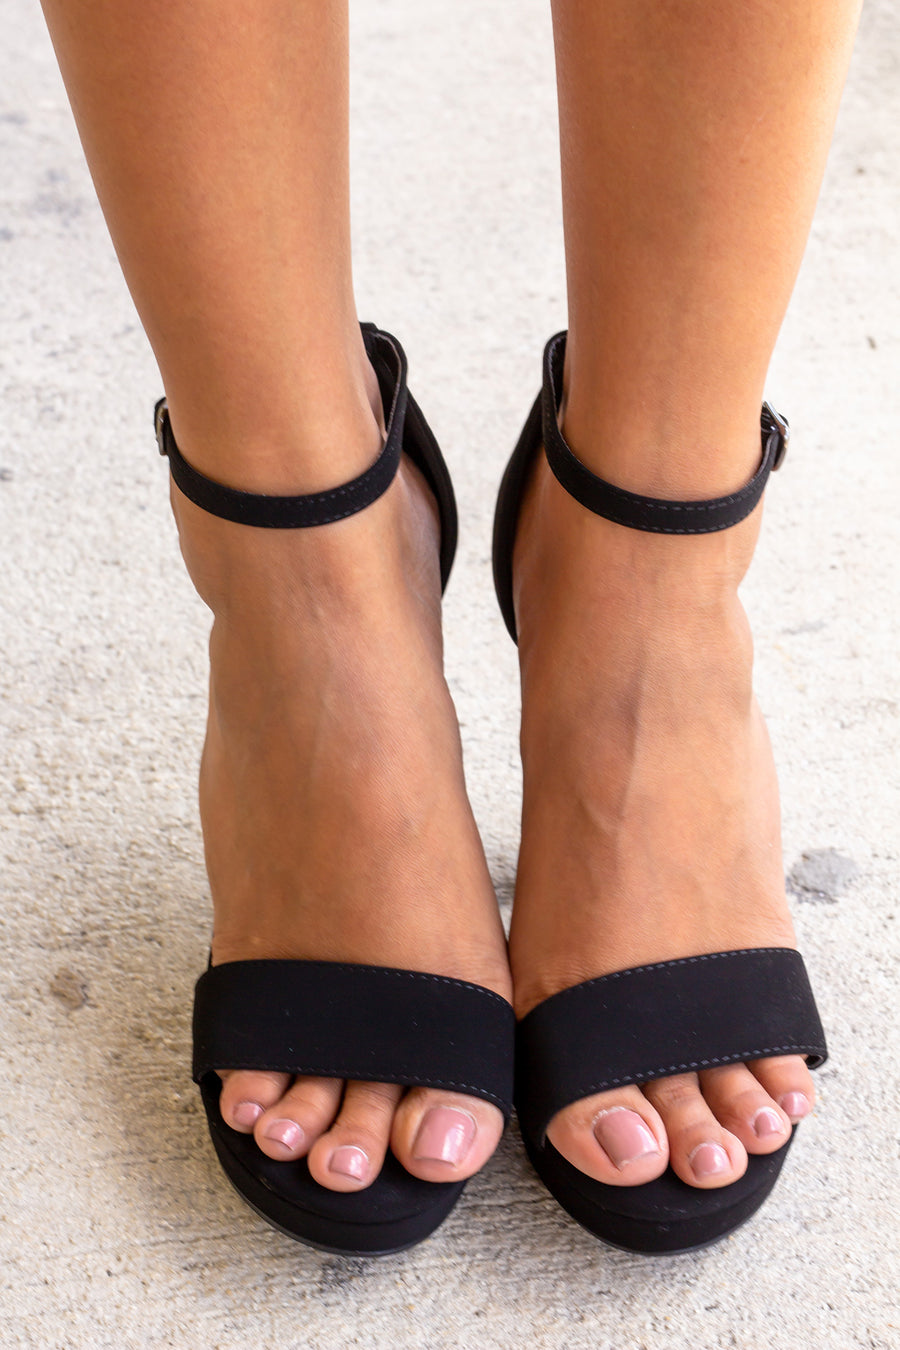 a pair of strappy black open-toe sandals